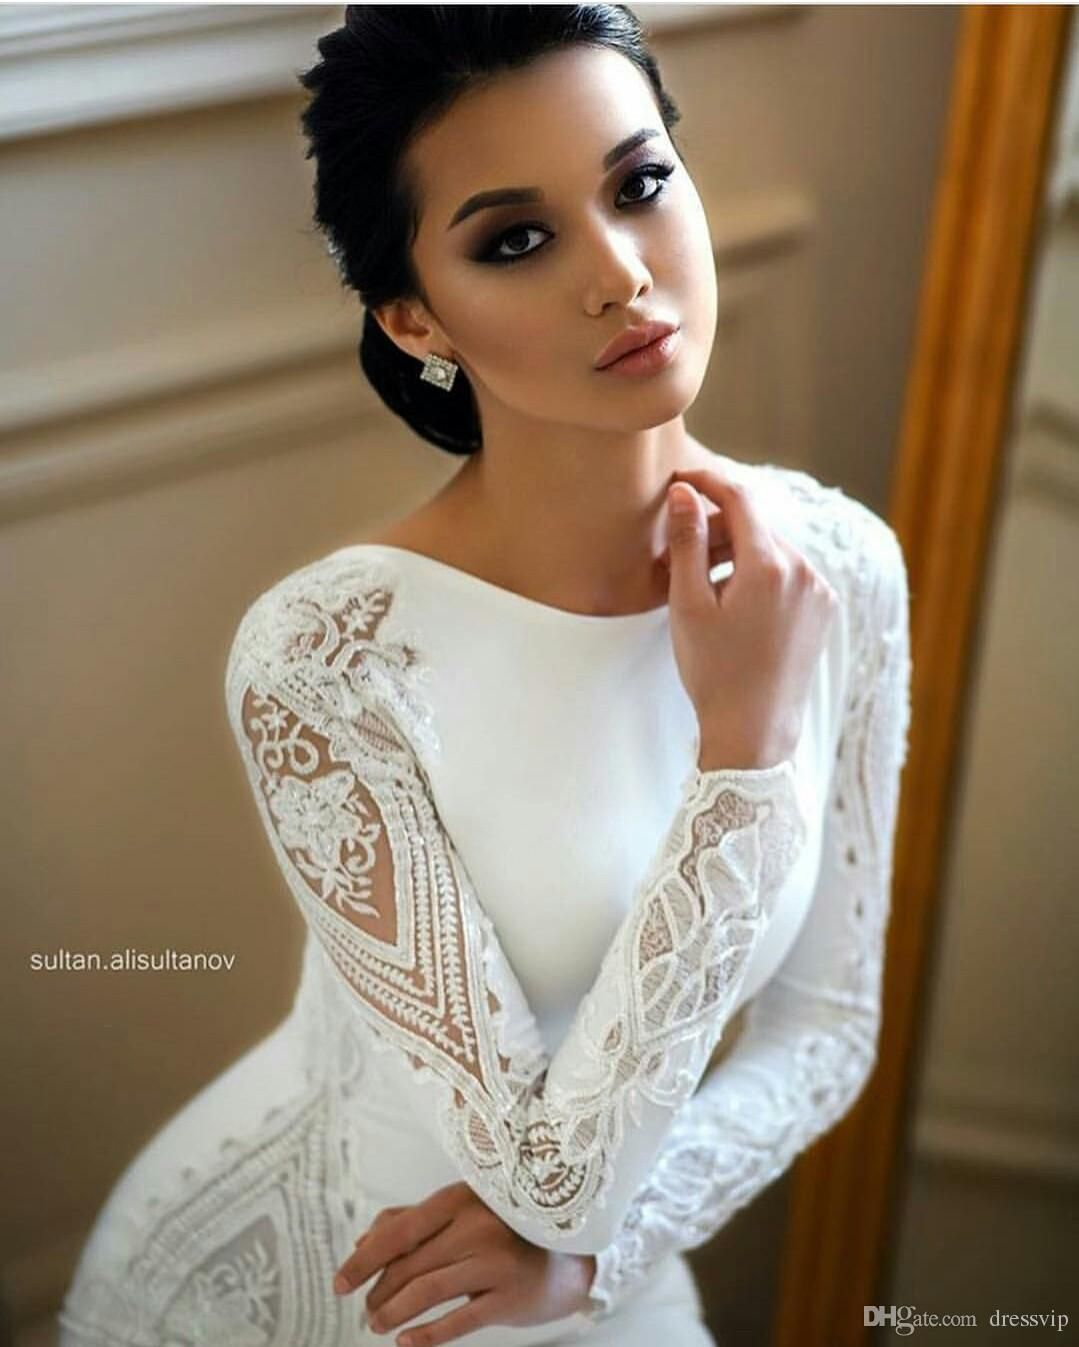 2019 Modest Mermaid Wedding Dresses Lace Appliqued Beaded Berta Sweep Train Boho Wedding Dress Bridal Gowns Plus Size Sleeves Abiti Da Sposa Elegant Wedding Dresses Inexpensive Wedding Dresses From Dressvip, $35.46| DHgate.Com #bertaweddingdress